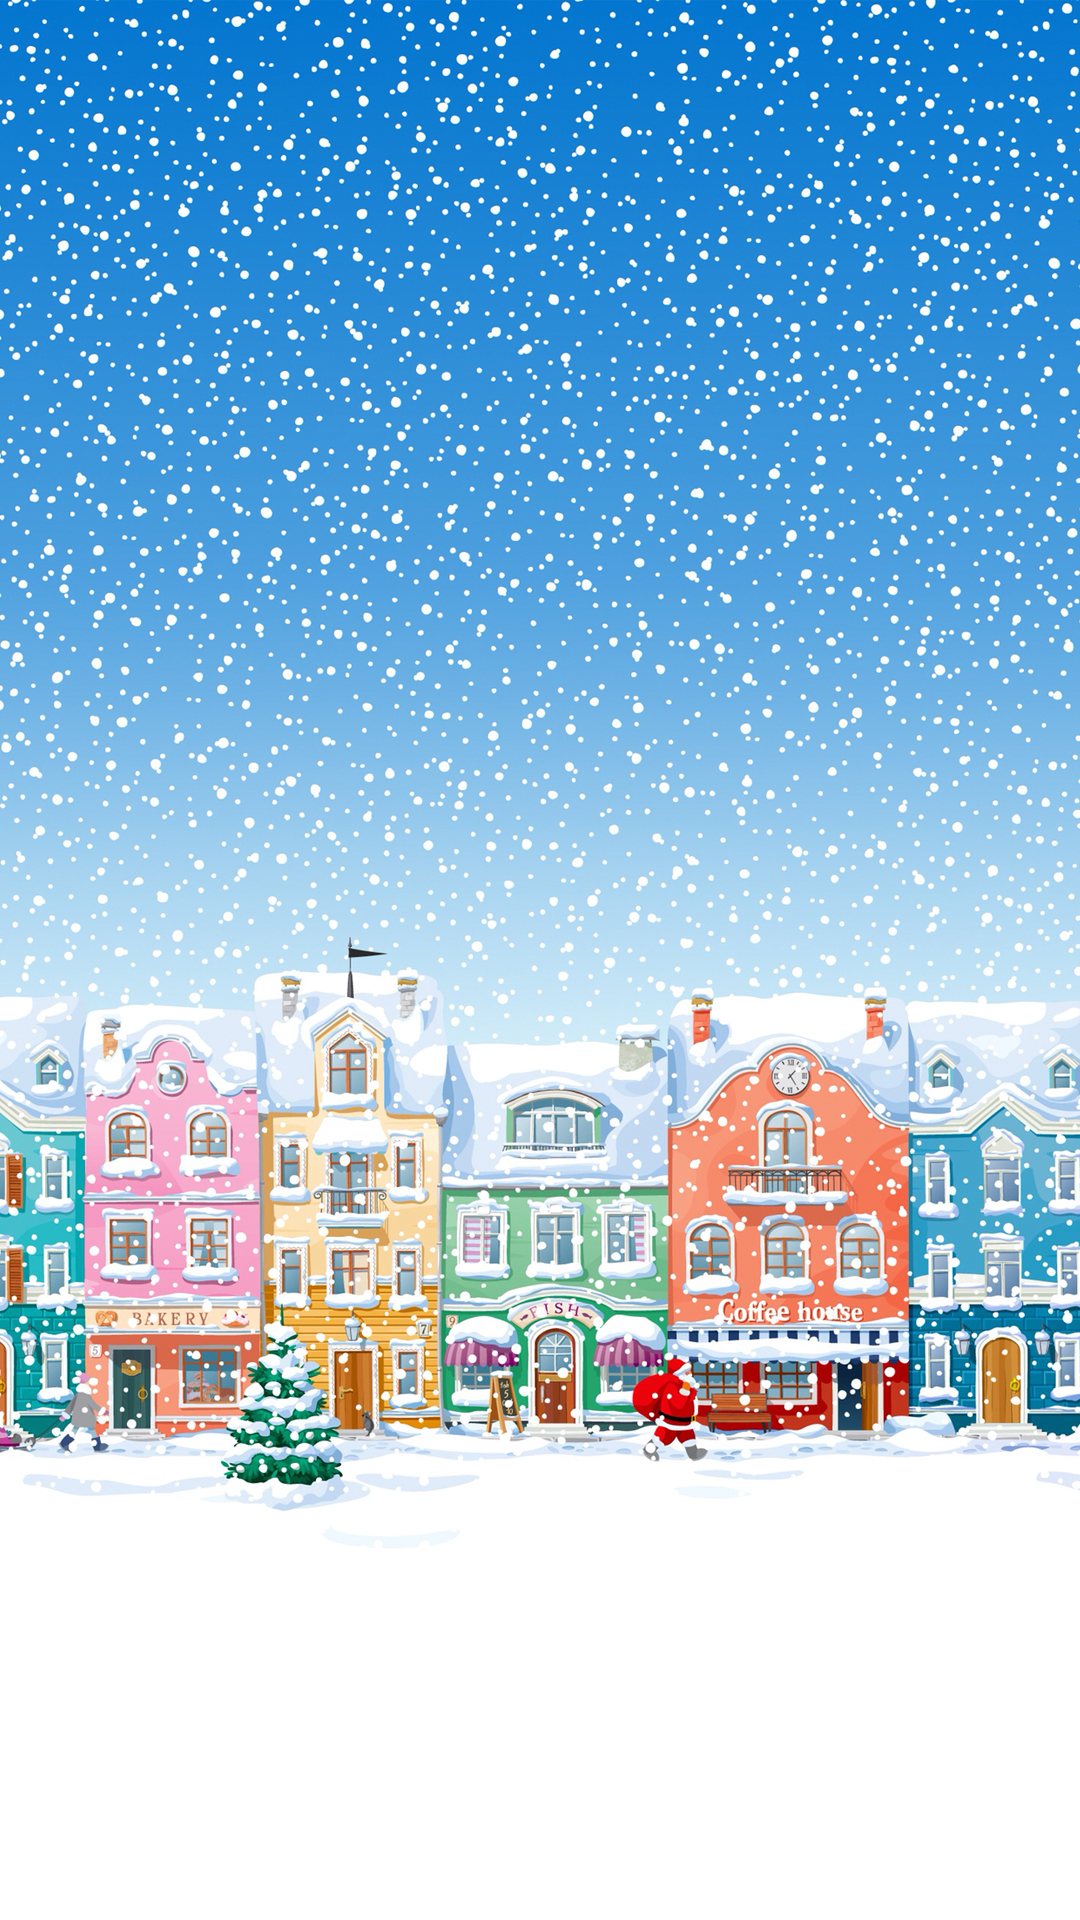 Snowy Town Santa Claus Delivering Christmas Presents Wallpapers